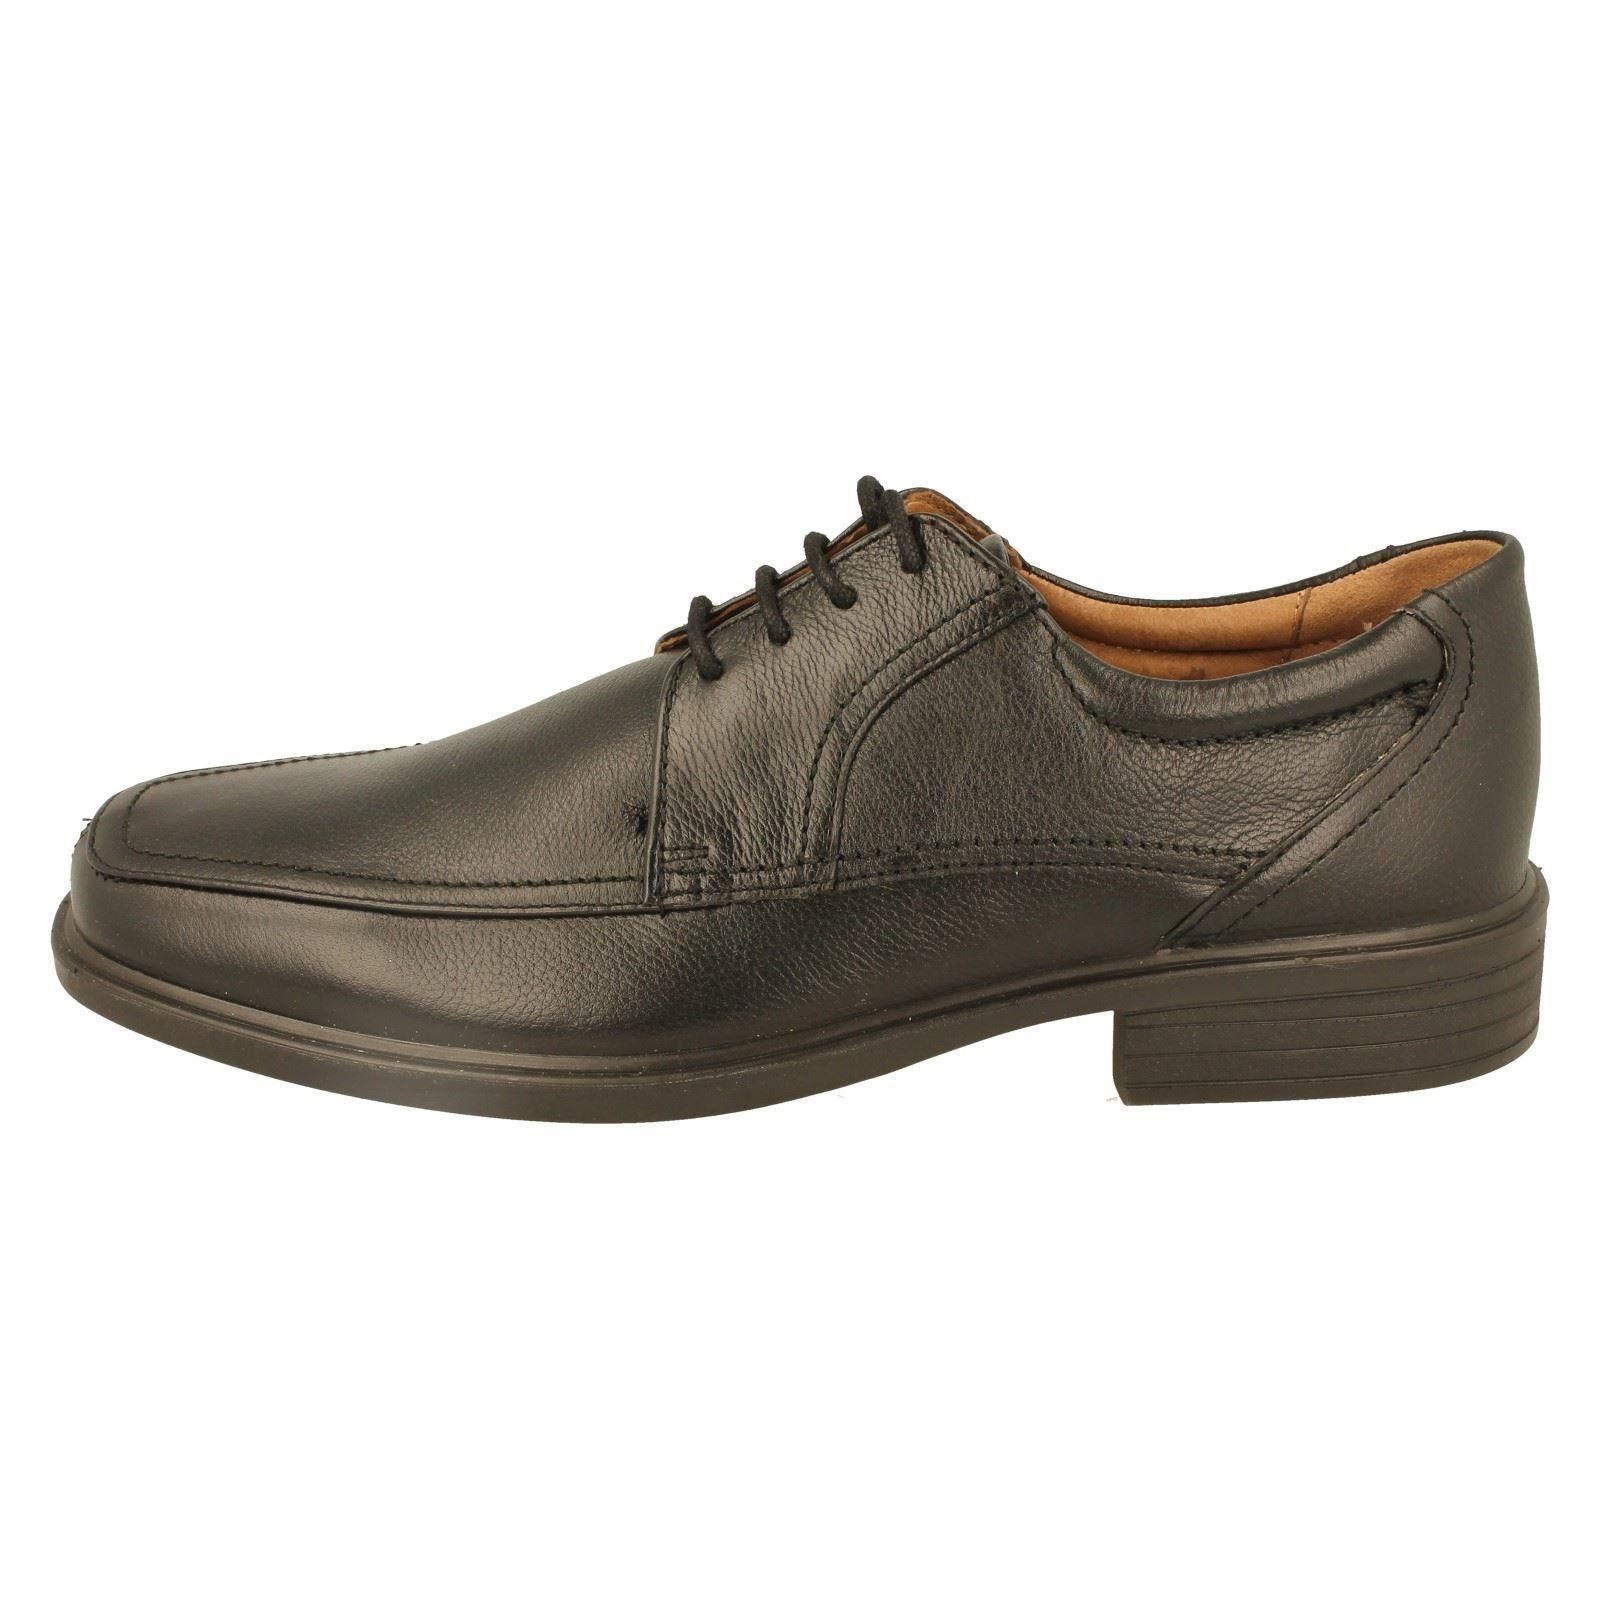 Mens Padders Formal Lace Up Shoes,The Style Adam -w